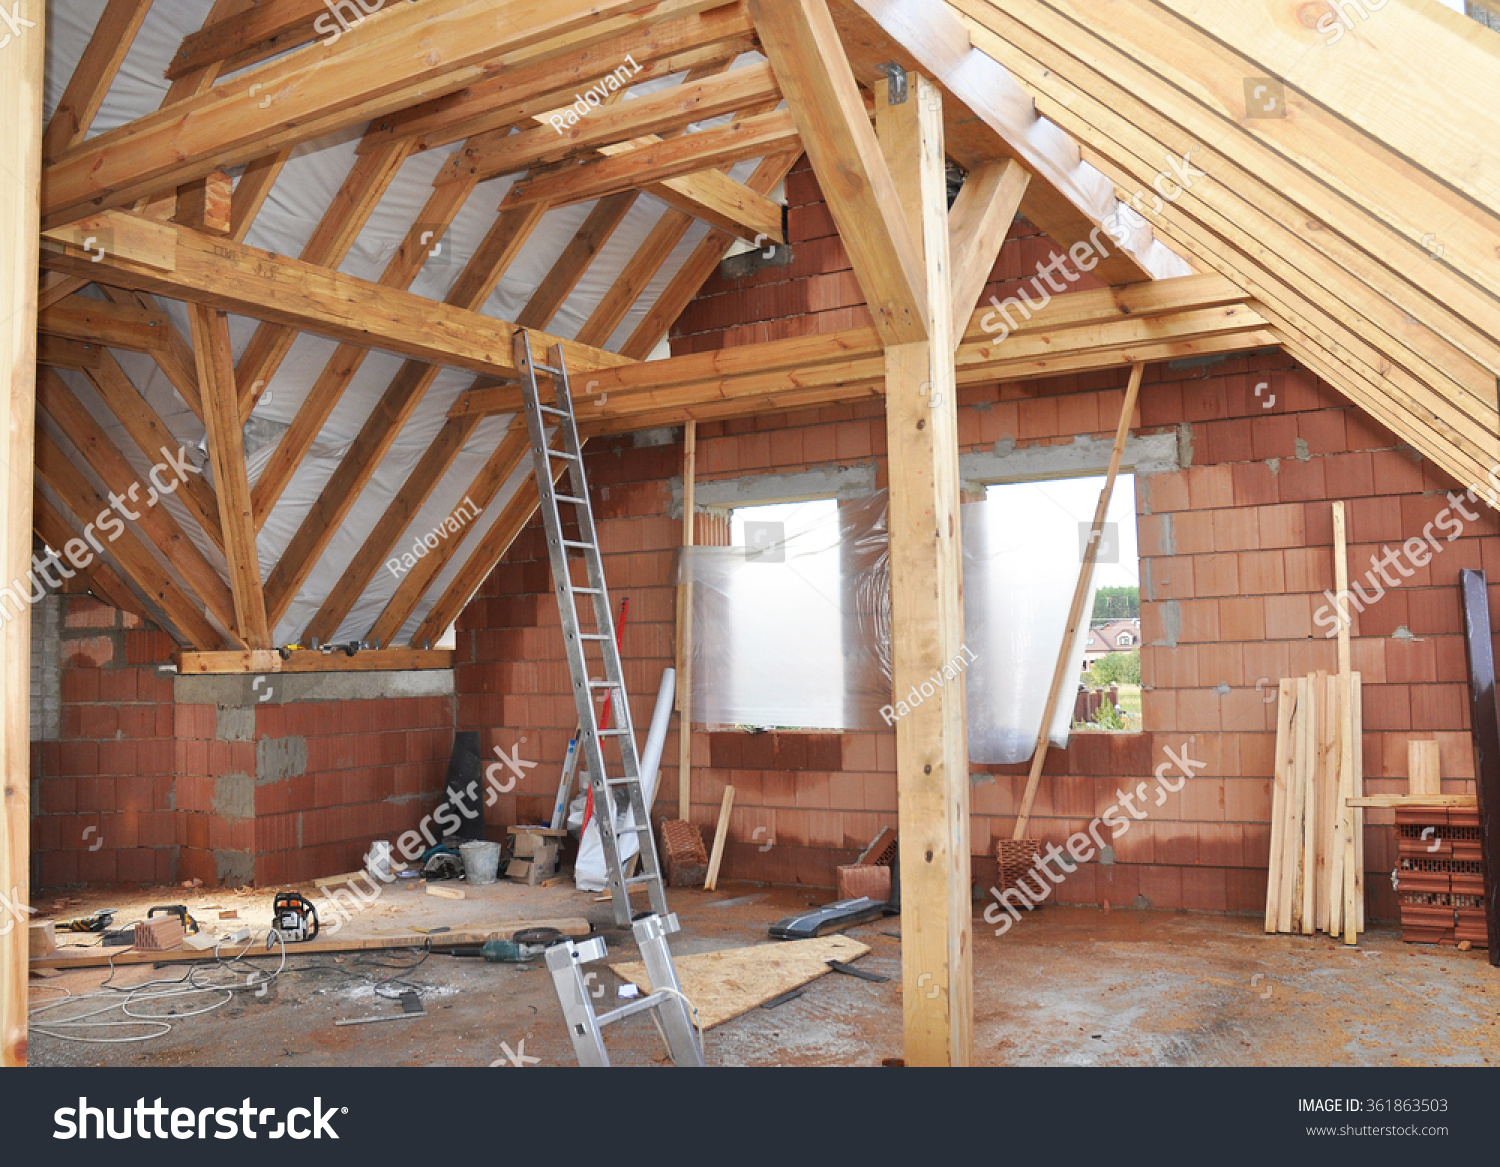 Building attic interior roofing construction indoor wooden roof frame house construction - Build wood roof abcs roof framing ...